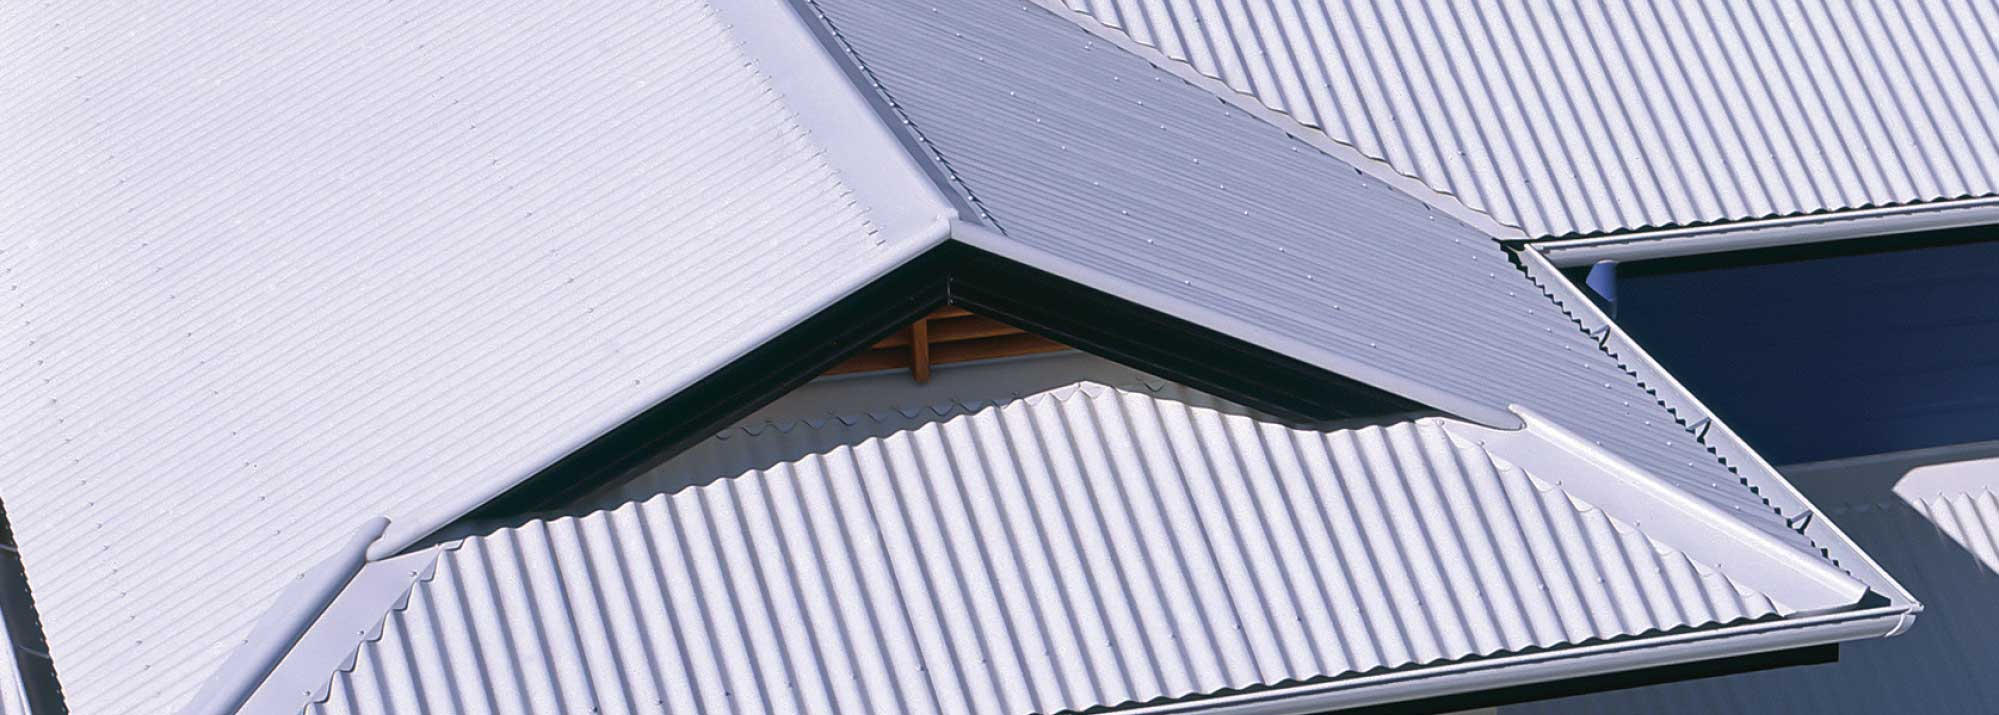 Roofing Accessories